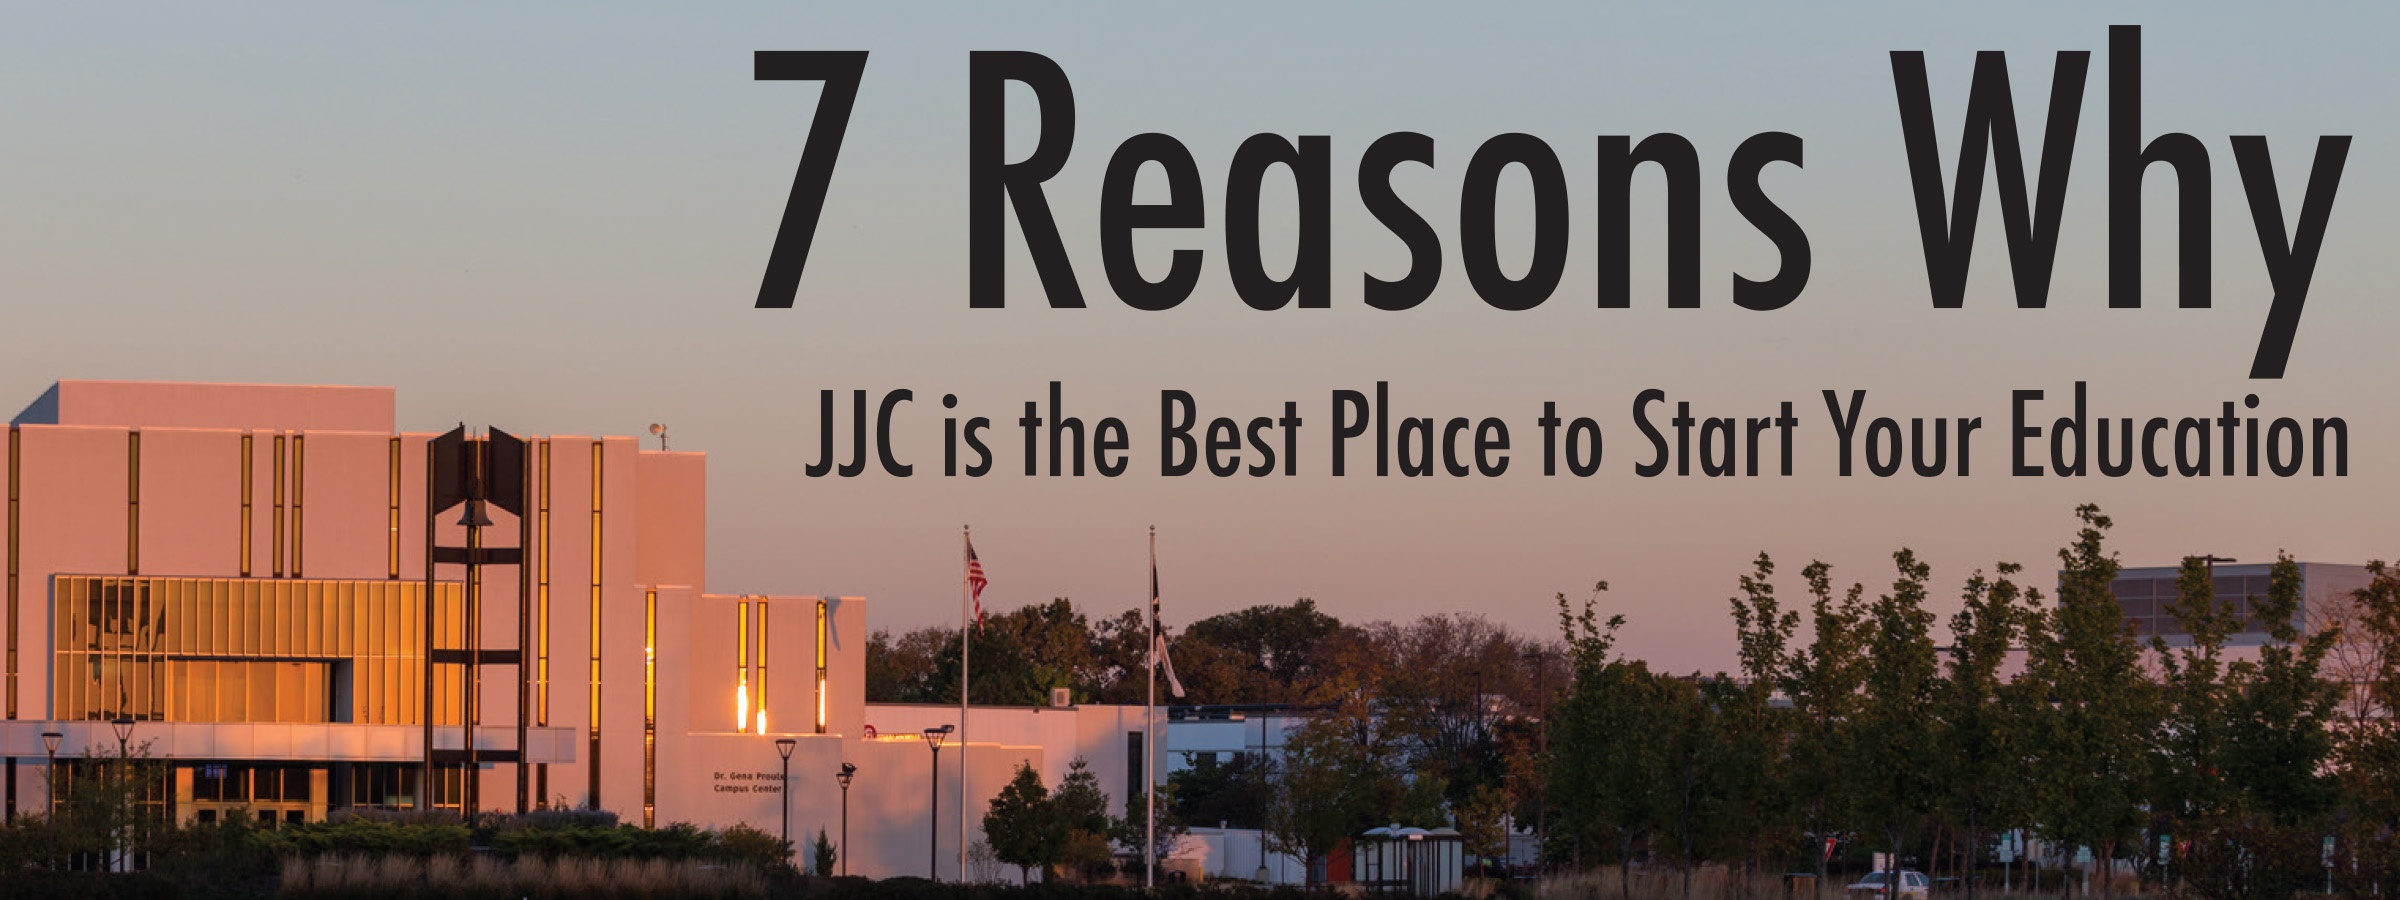 joliet junior college 7 reasons why jjc is the best place to start your education banner